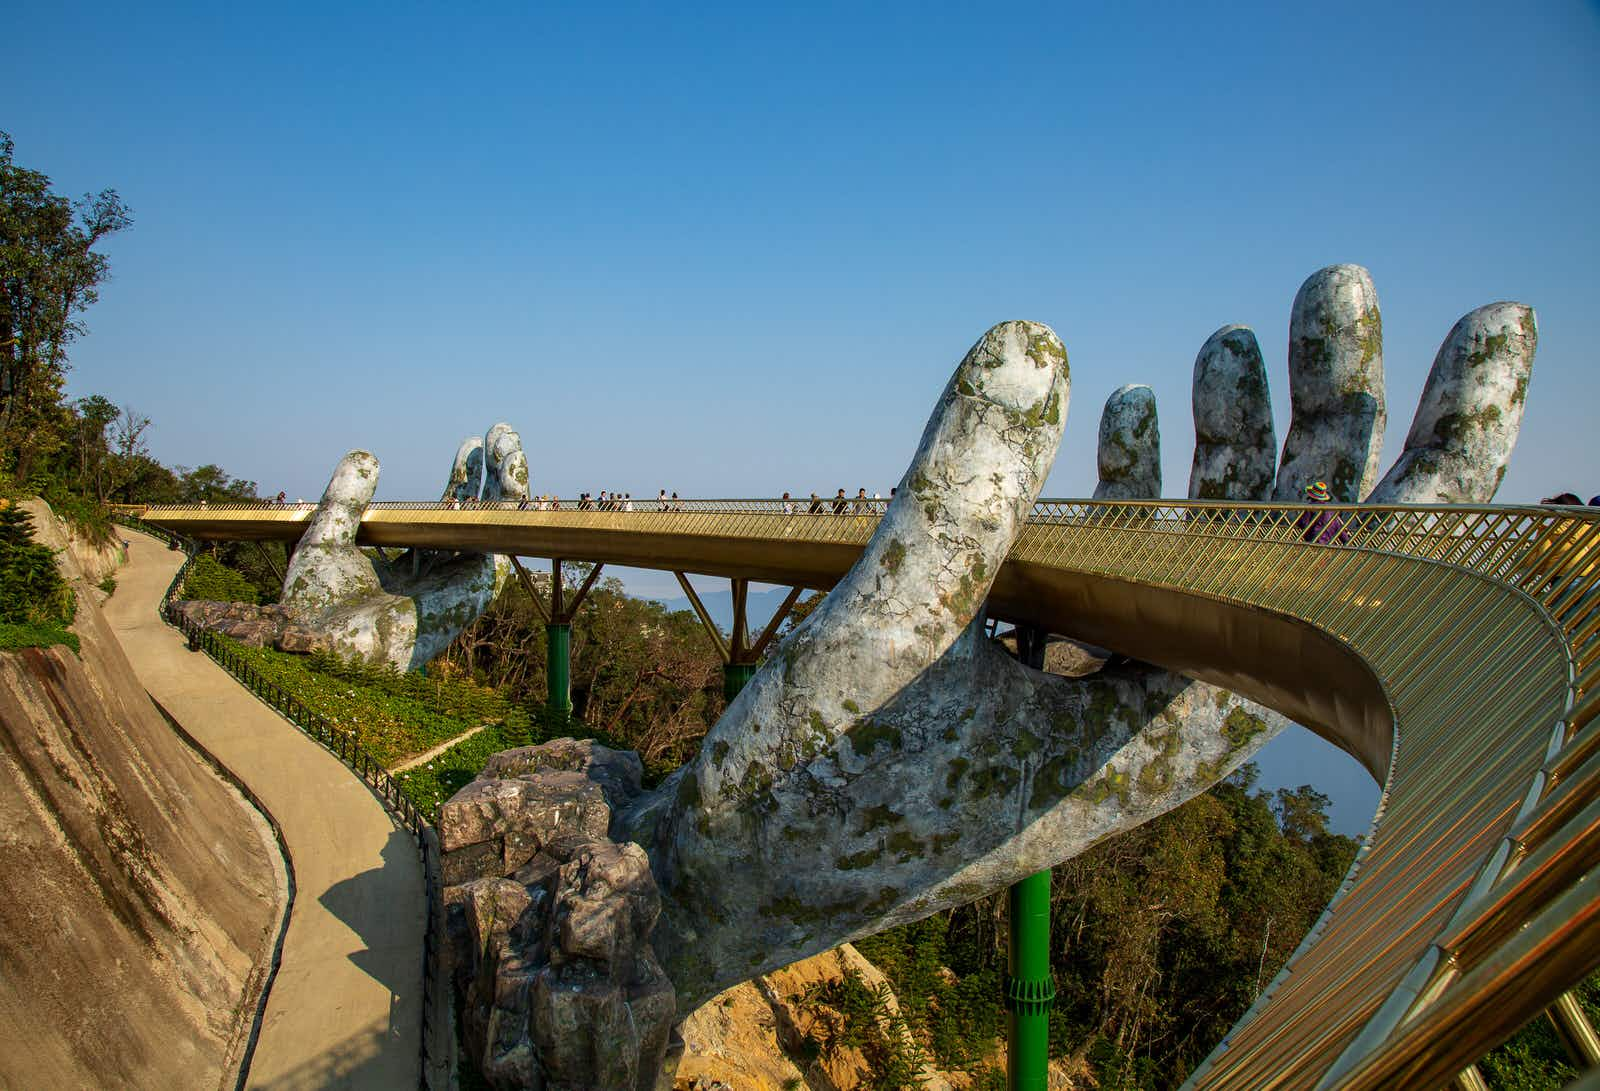 People stroll across the Golden Bridge in Ba Na Hills, which appears to be supported by giant hands